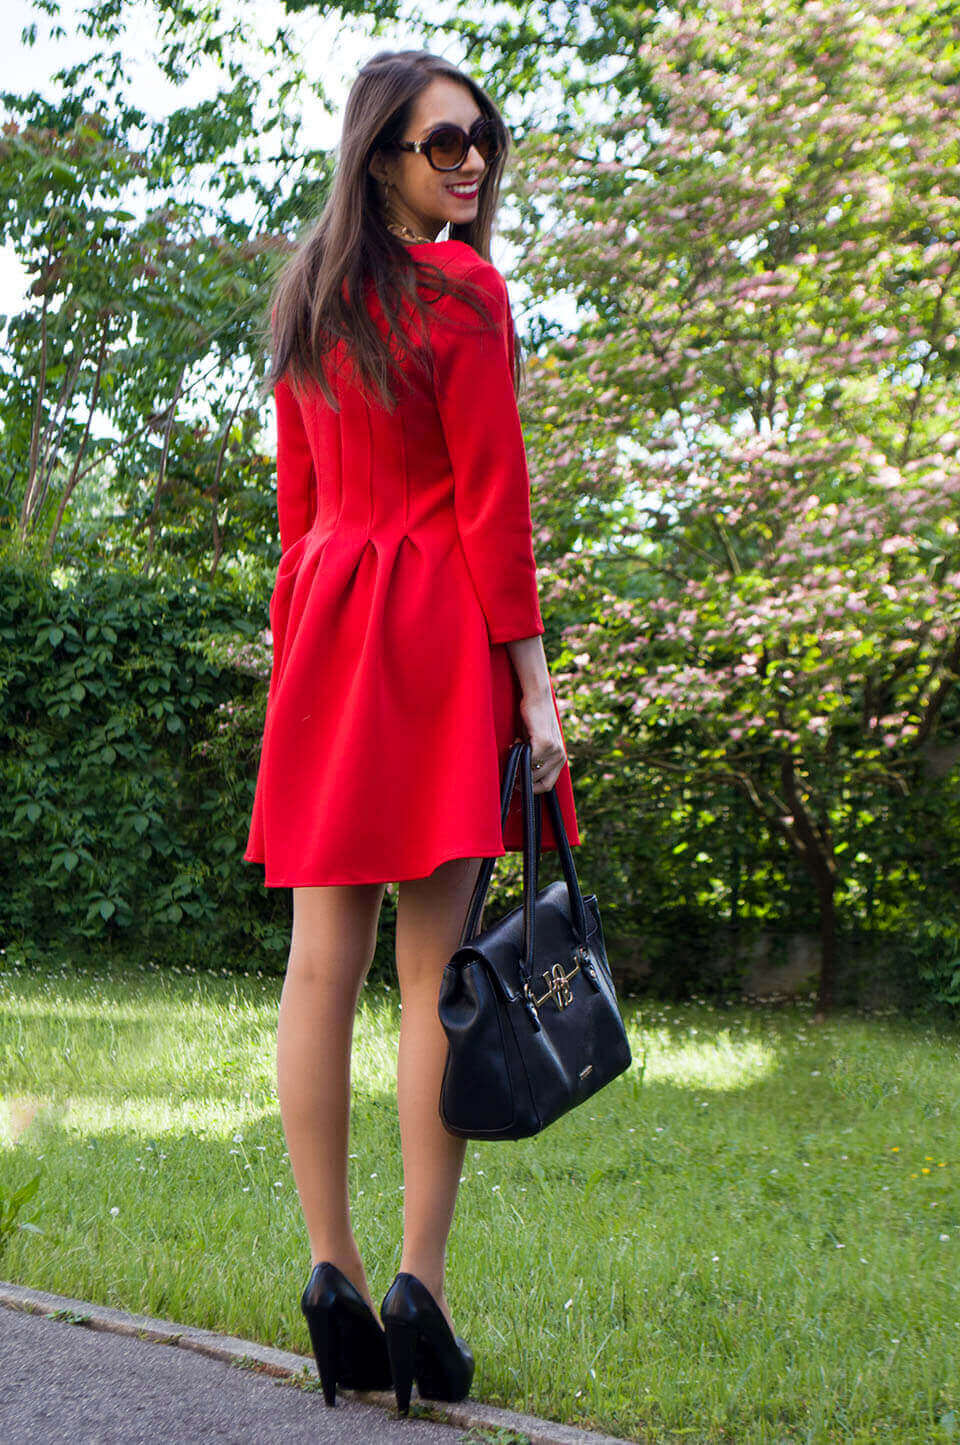 Red dress - Manu Luize outfit